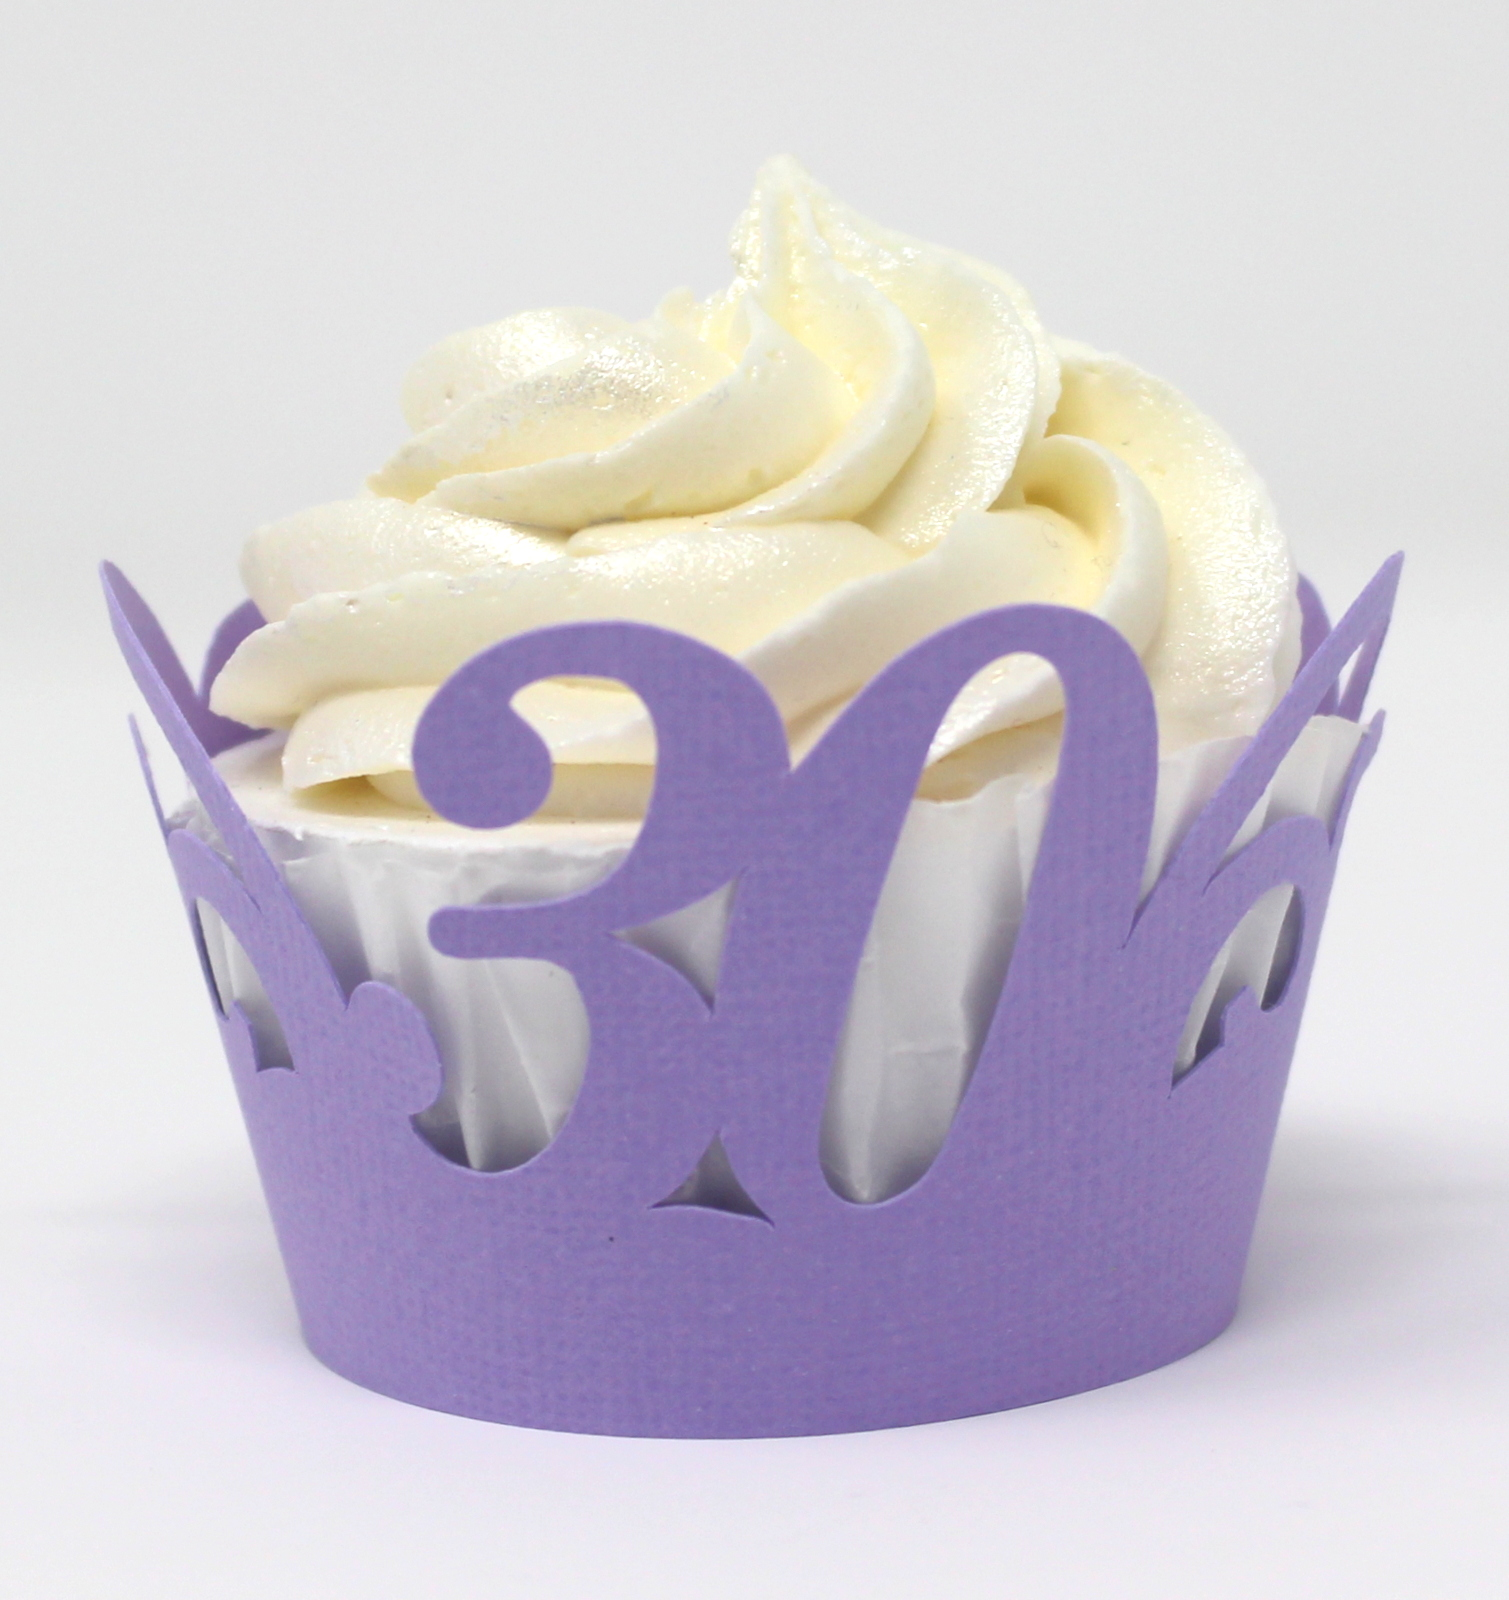 All About Details 30 Cupcake Wrappers,12pcs, 30th birthday decoration, 30th anniversary decoration (Lavender)